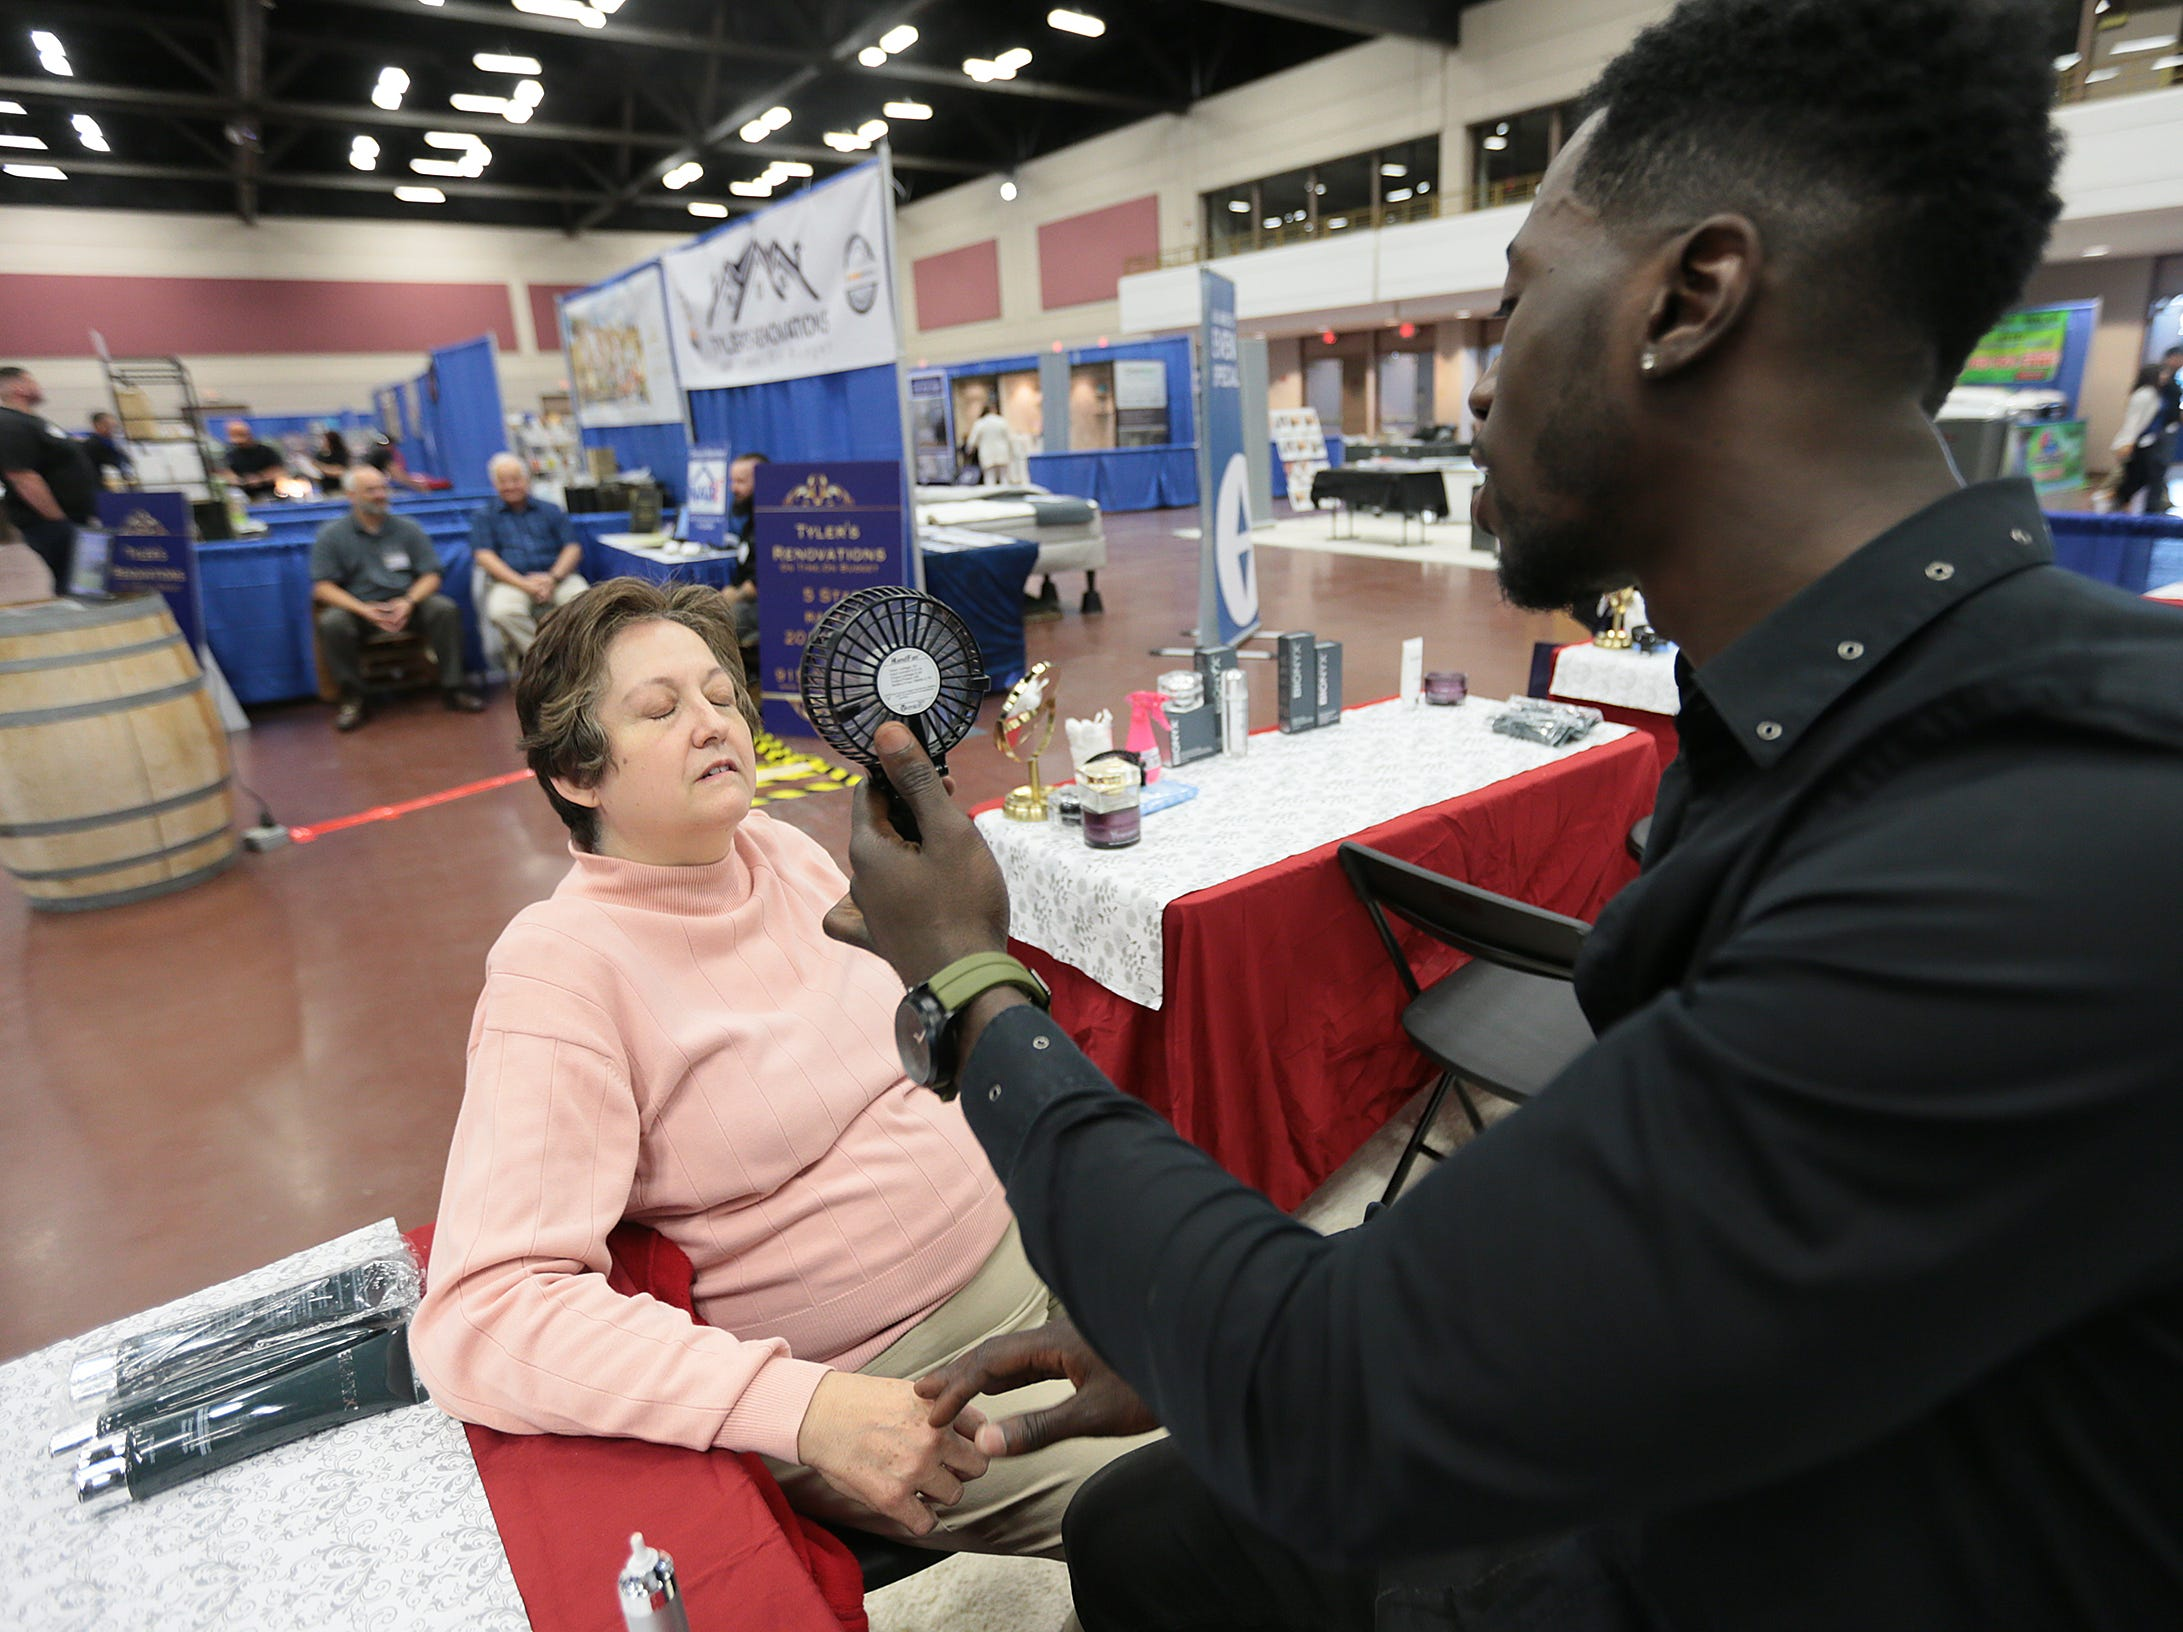 Femi Olanrewaju demonstrates Bionyx, an anti-aging product, at the El Paso Spring Home Show and Pet Expo Friday. The show continues Saturday 10-7pm and Sunday 11-4pm.